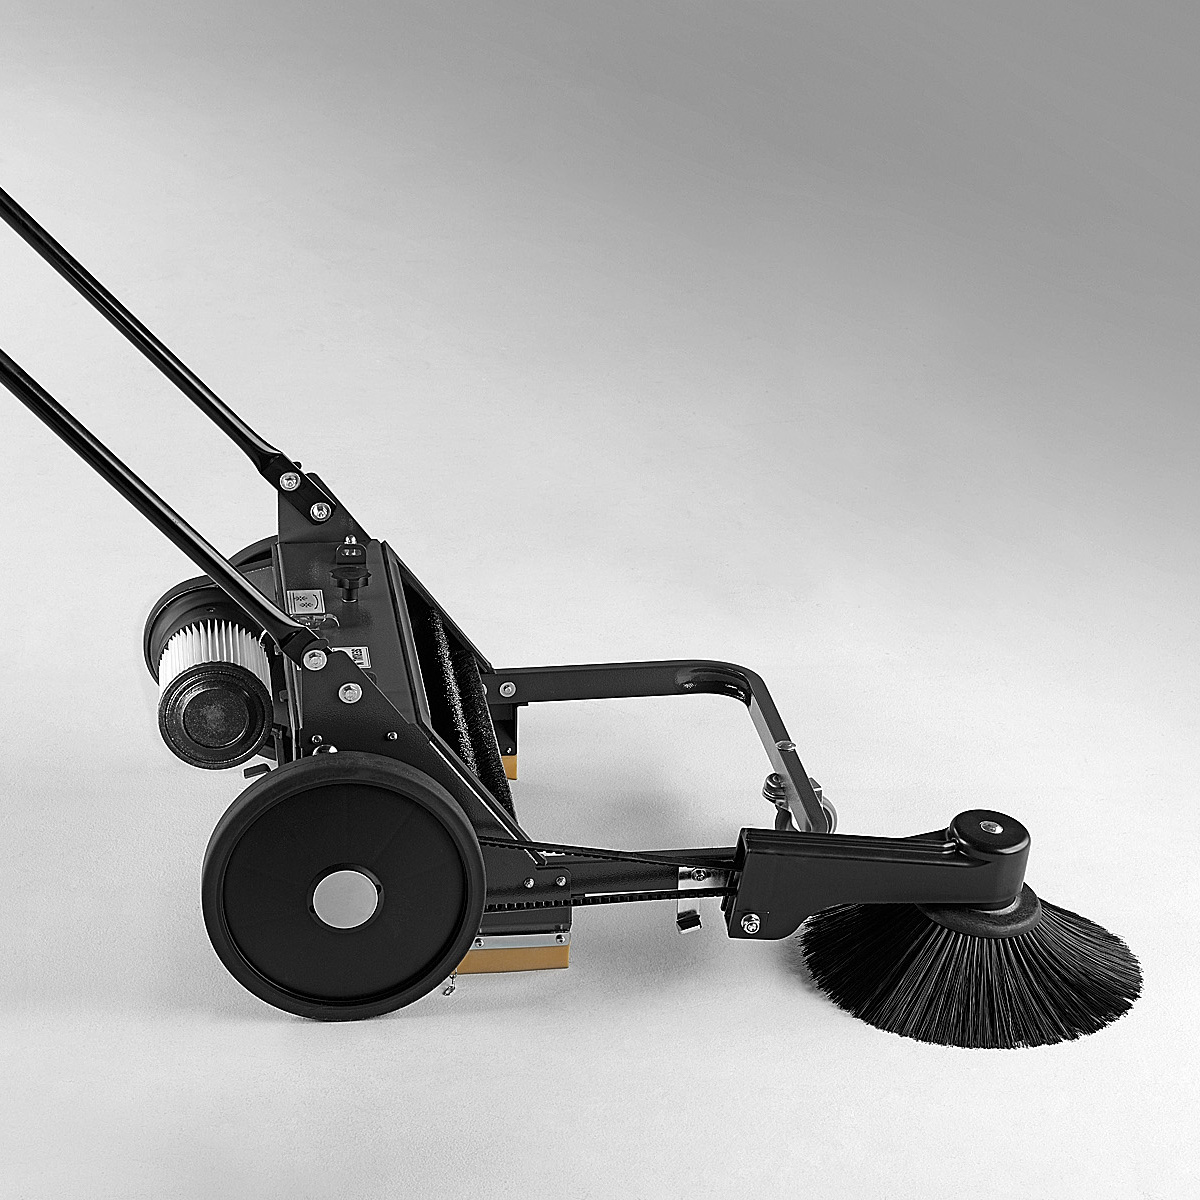 STRONG METAL CHASSIS THE MANUAL SWEEPER PICOBELLO 101